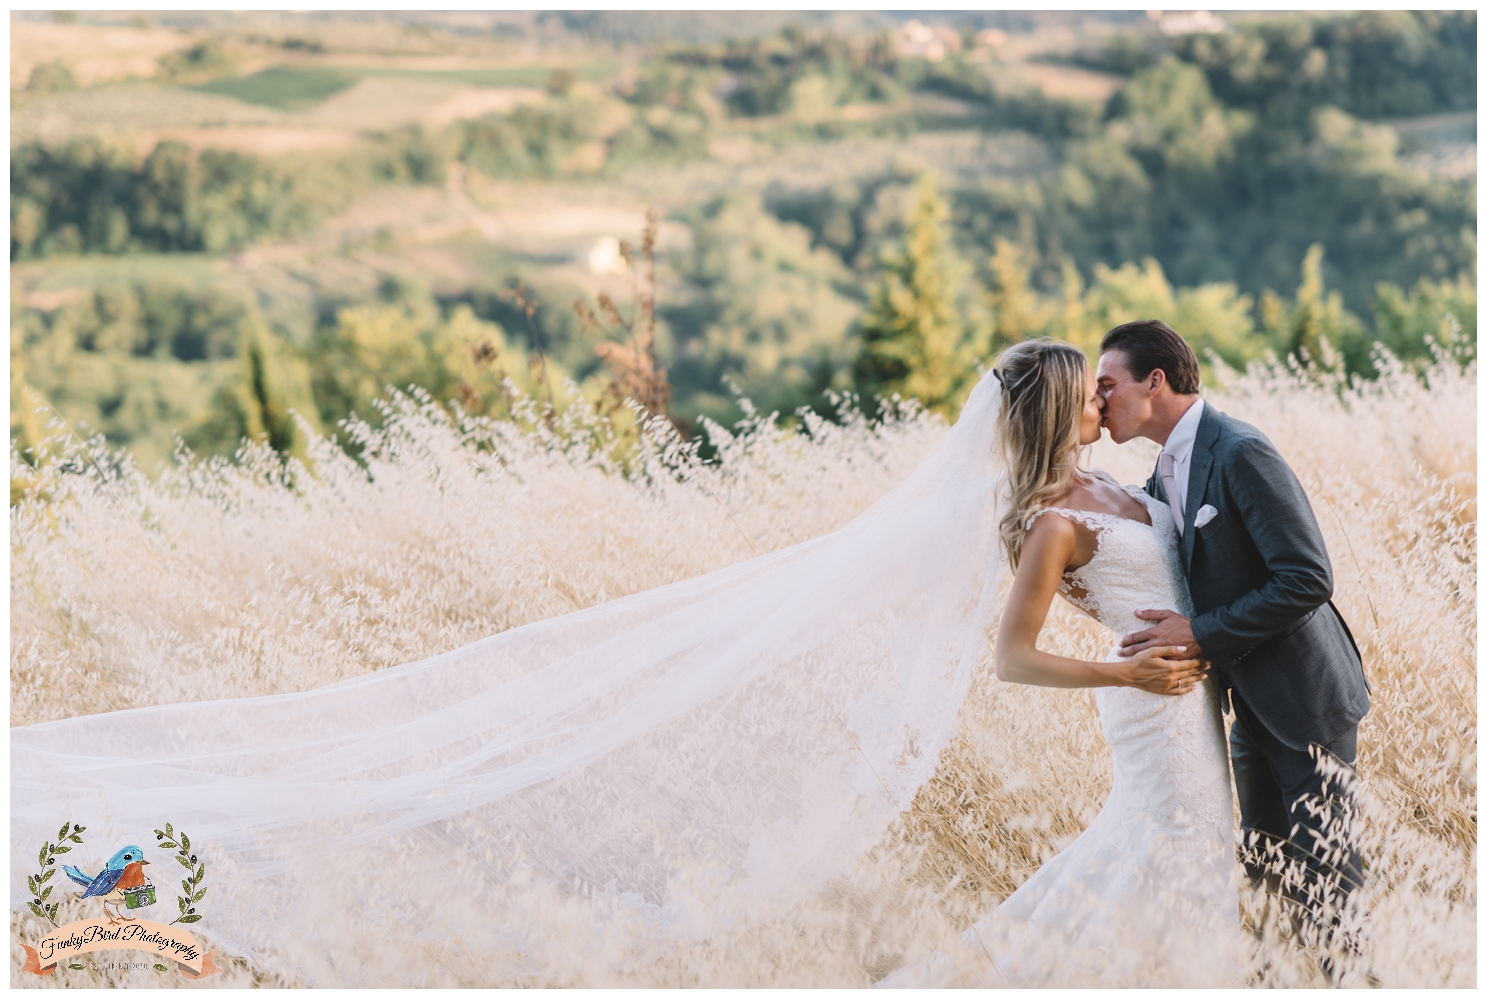 Wedding_Photographer_Tuscany_Florence_Italy_50.jpg